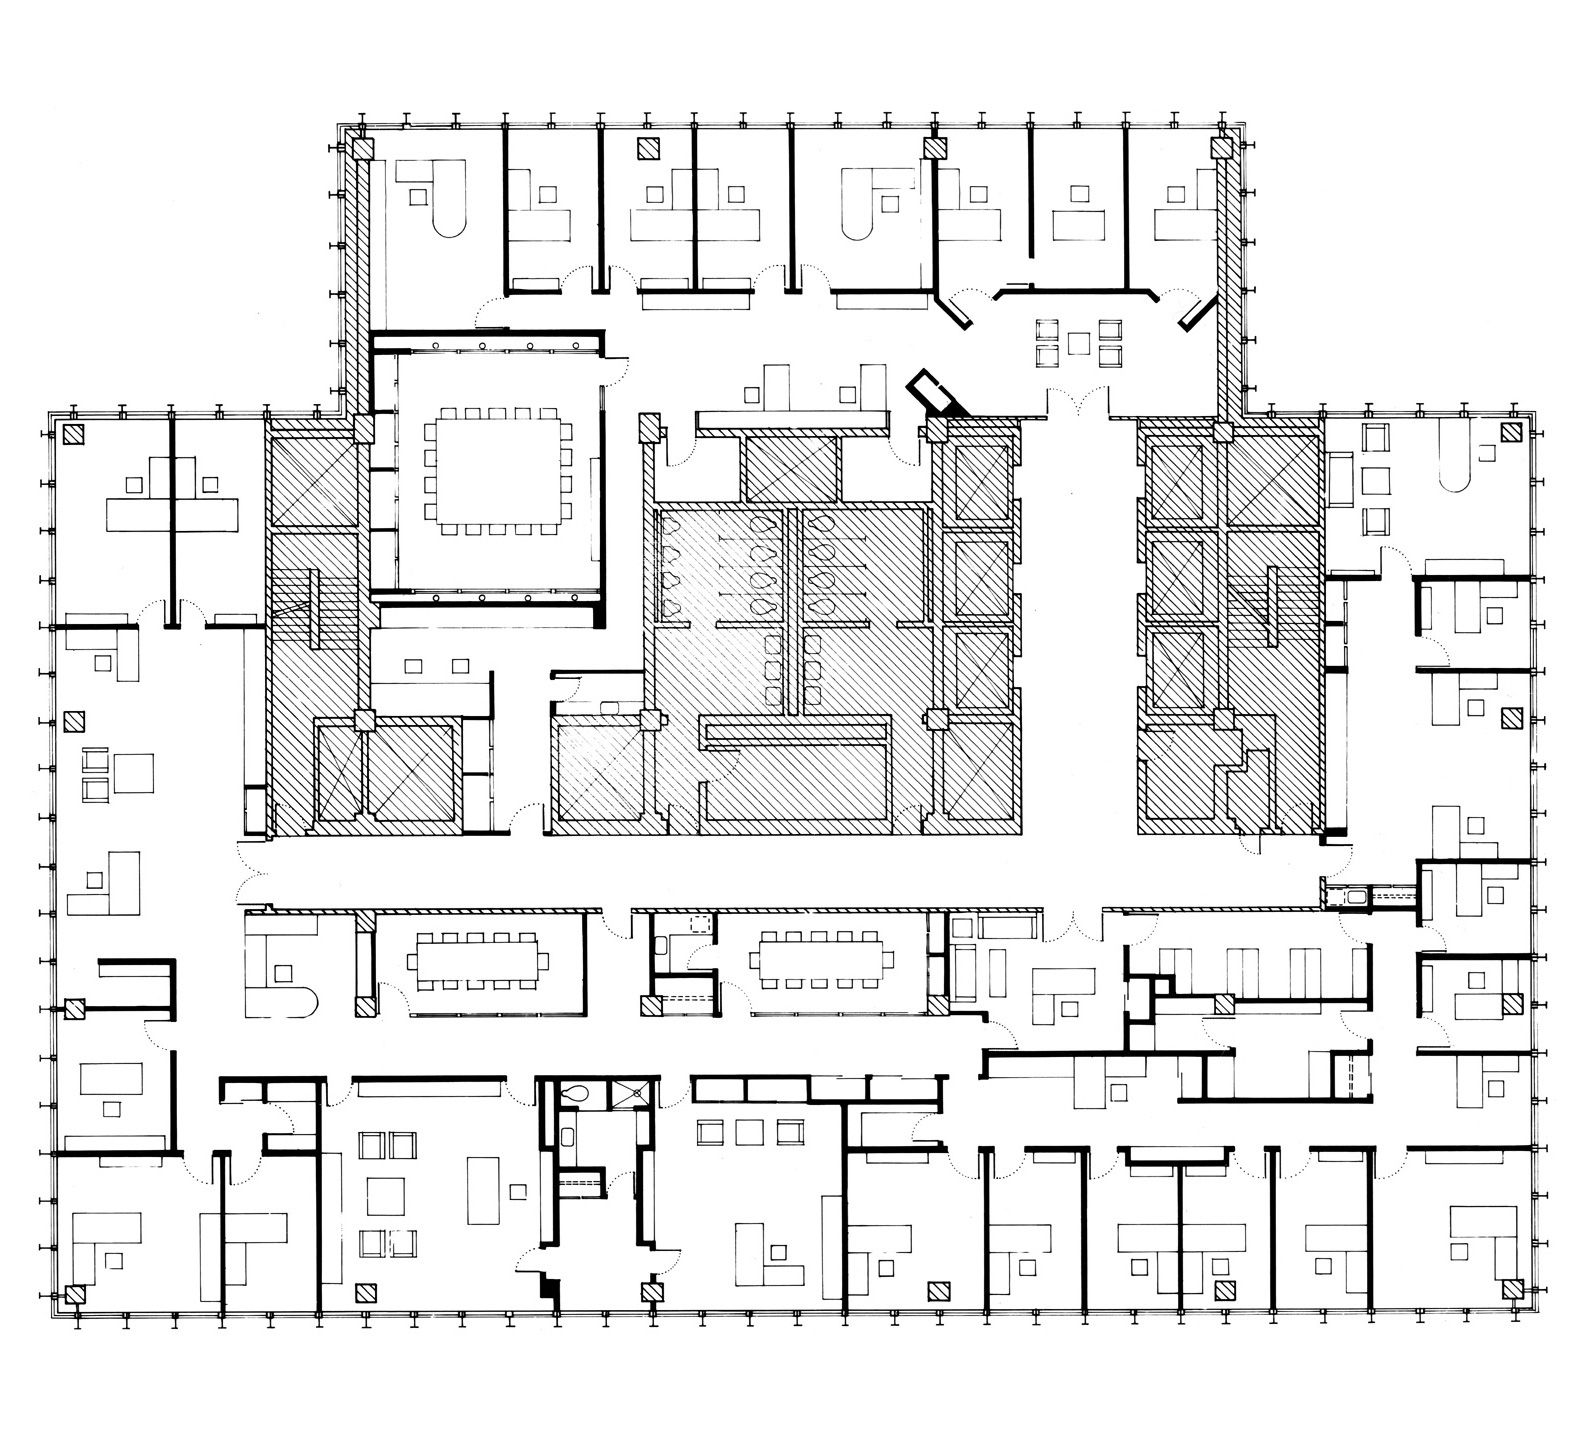 Seagram building plan in the seagram building roof for Latest building designs and plans